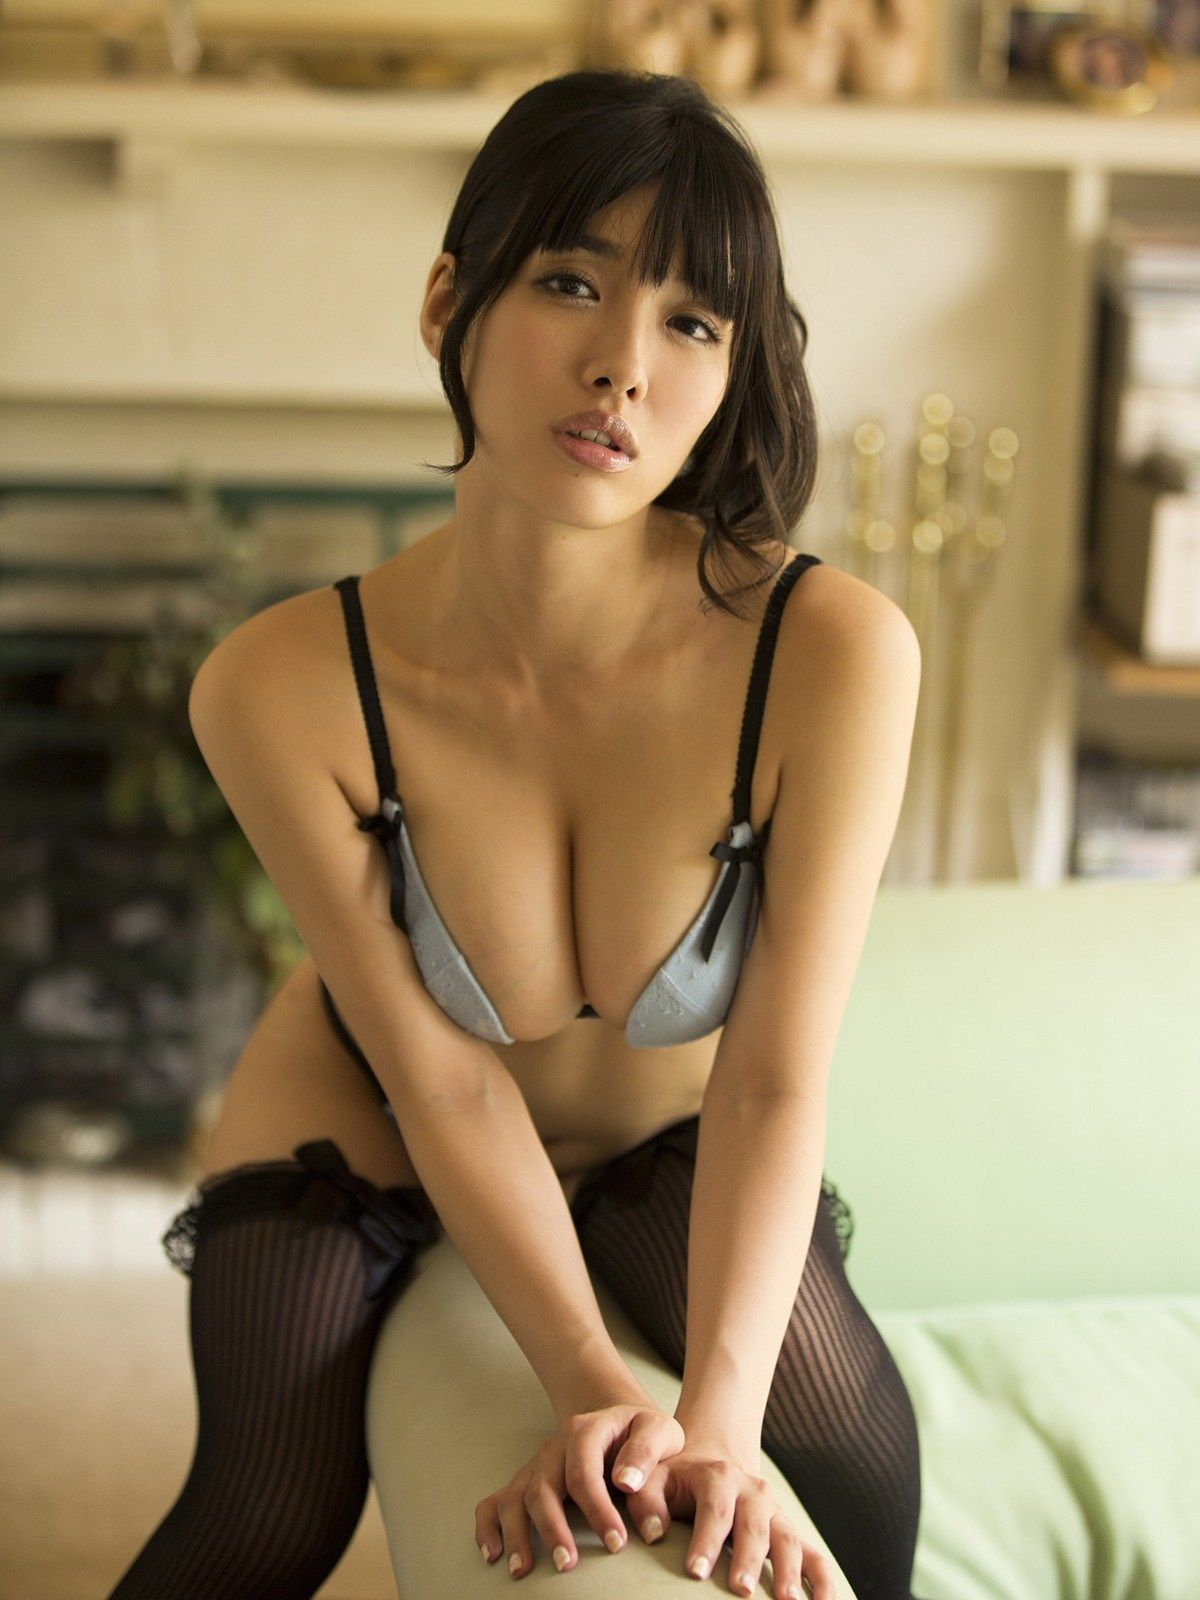 Hot japaneses images 25